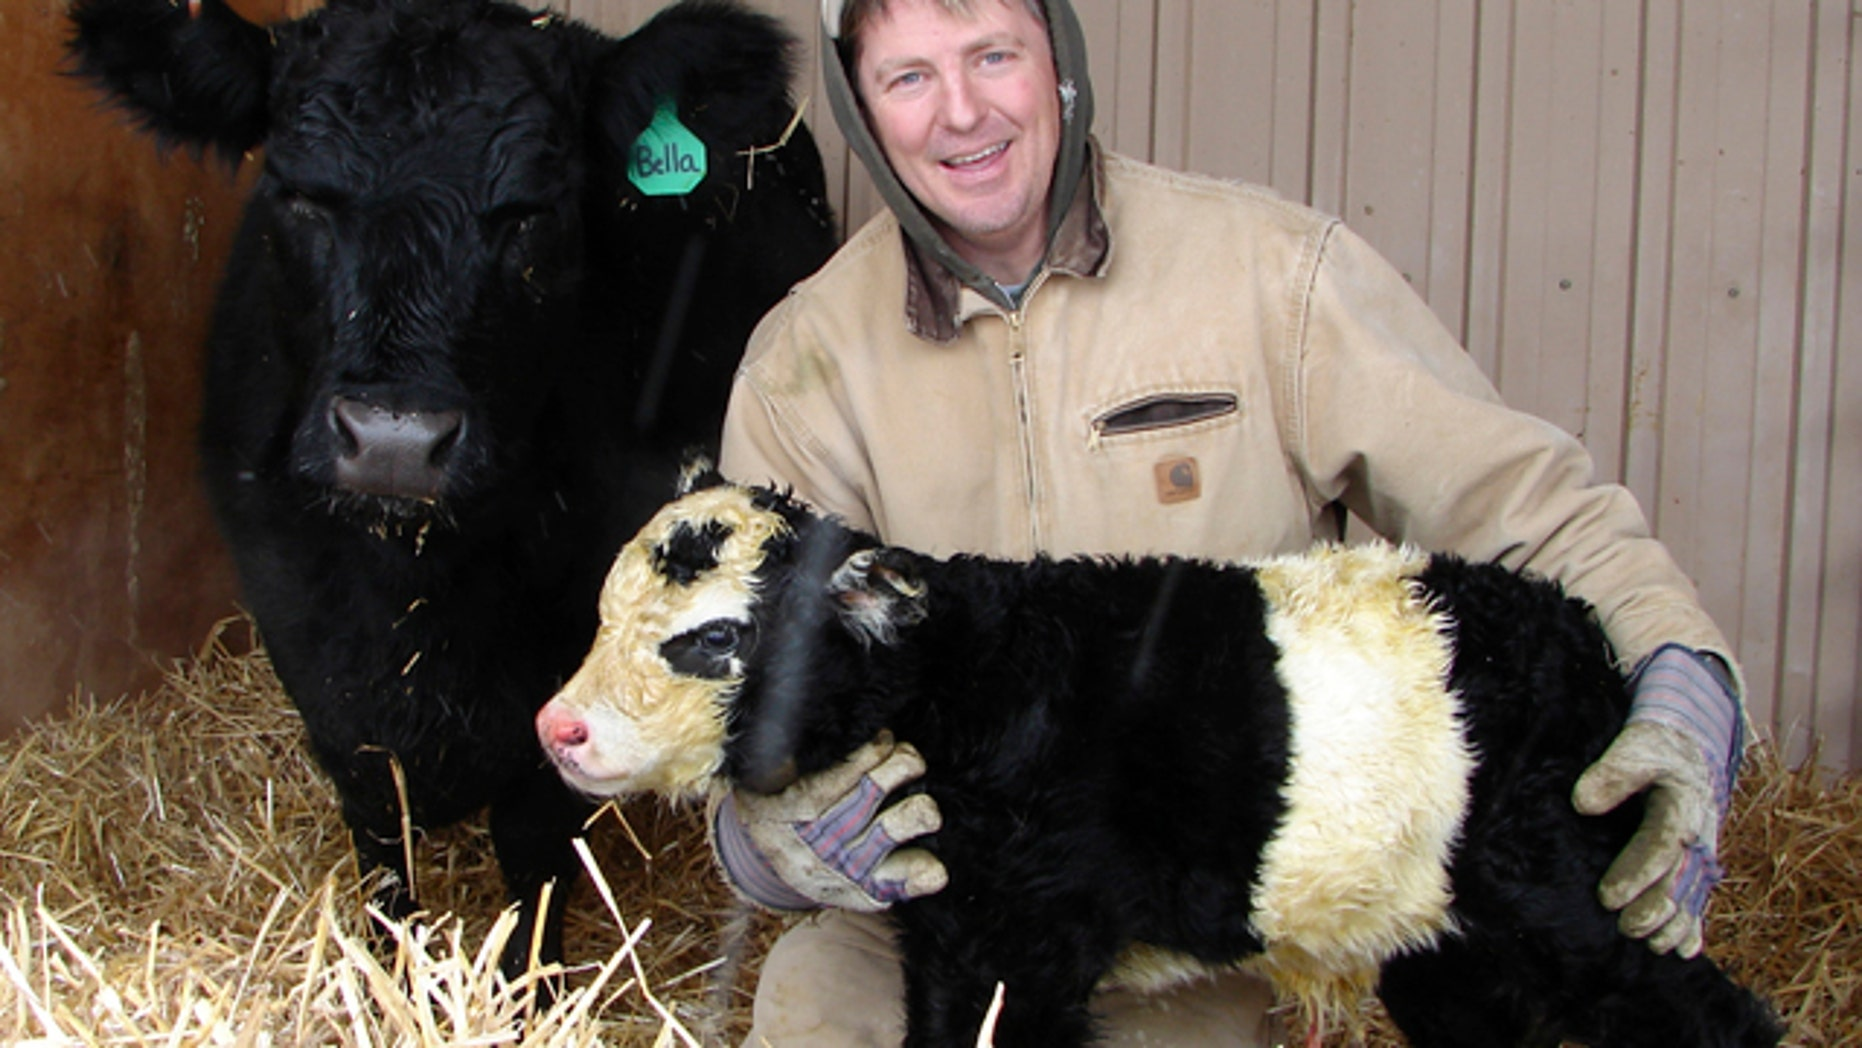 "In this Dec. 31, 2010 photo, farmer Chris Jessen holds his new ""panda cow"" named Ben, hours after the rare miniature cow was born in Campion, Colo. The miniature panda cow is the result of genetic manipulation. A white belt encircles the animal's midsection, and the cow has a white face with black ovals around the eyes, giving it a panda-like appearance. The mini-cattle are bred solely as pets. Jessen says panda calves can sell for $30,000."